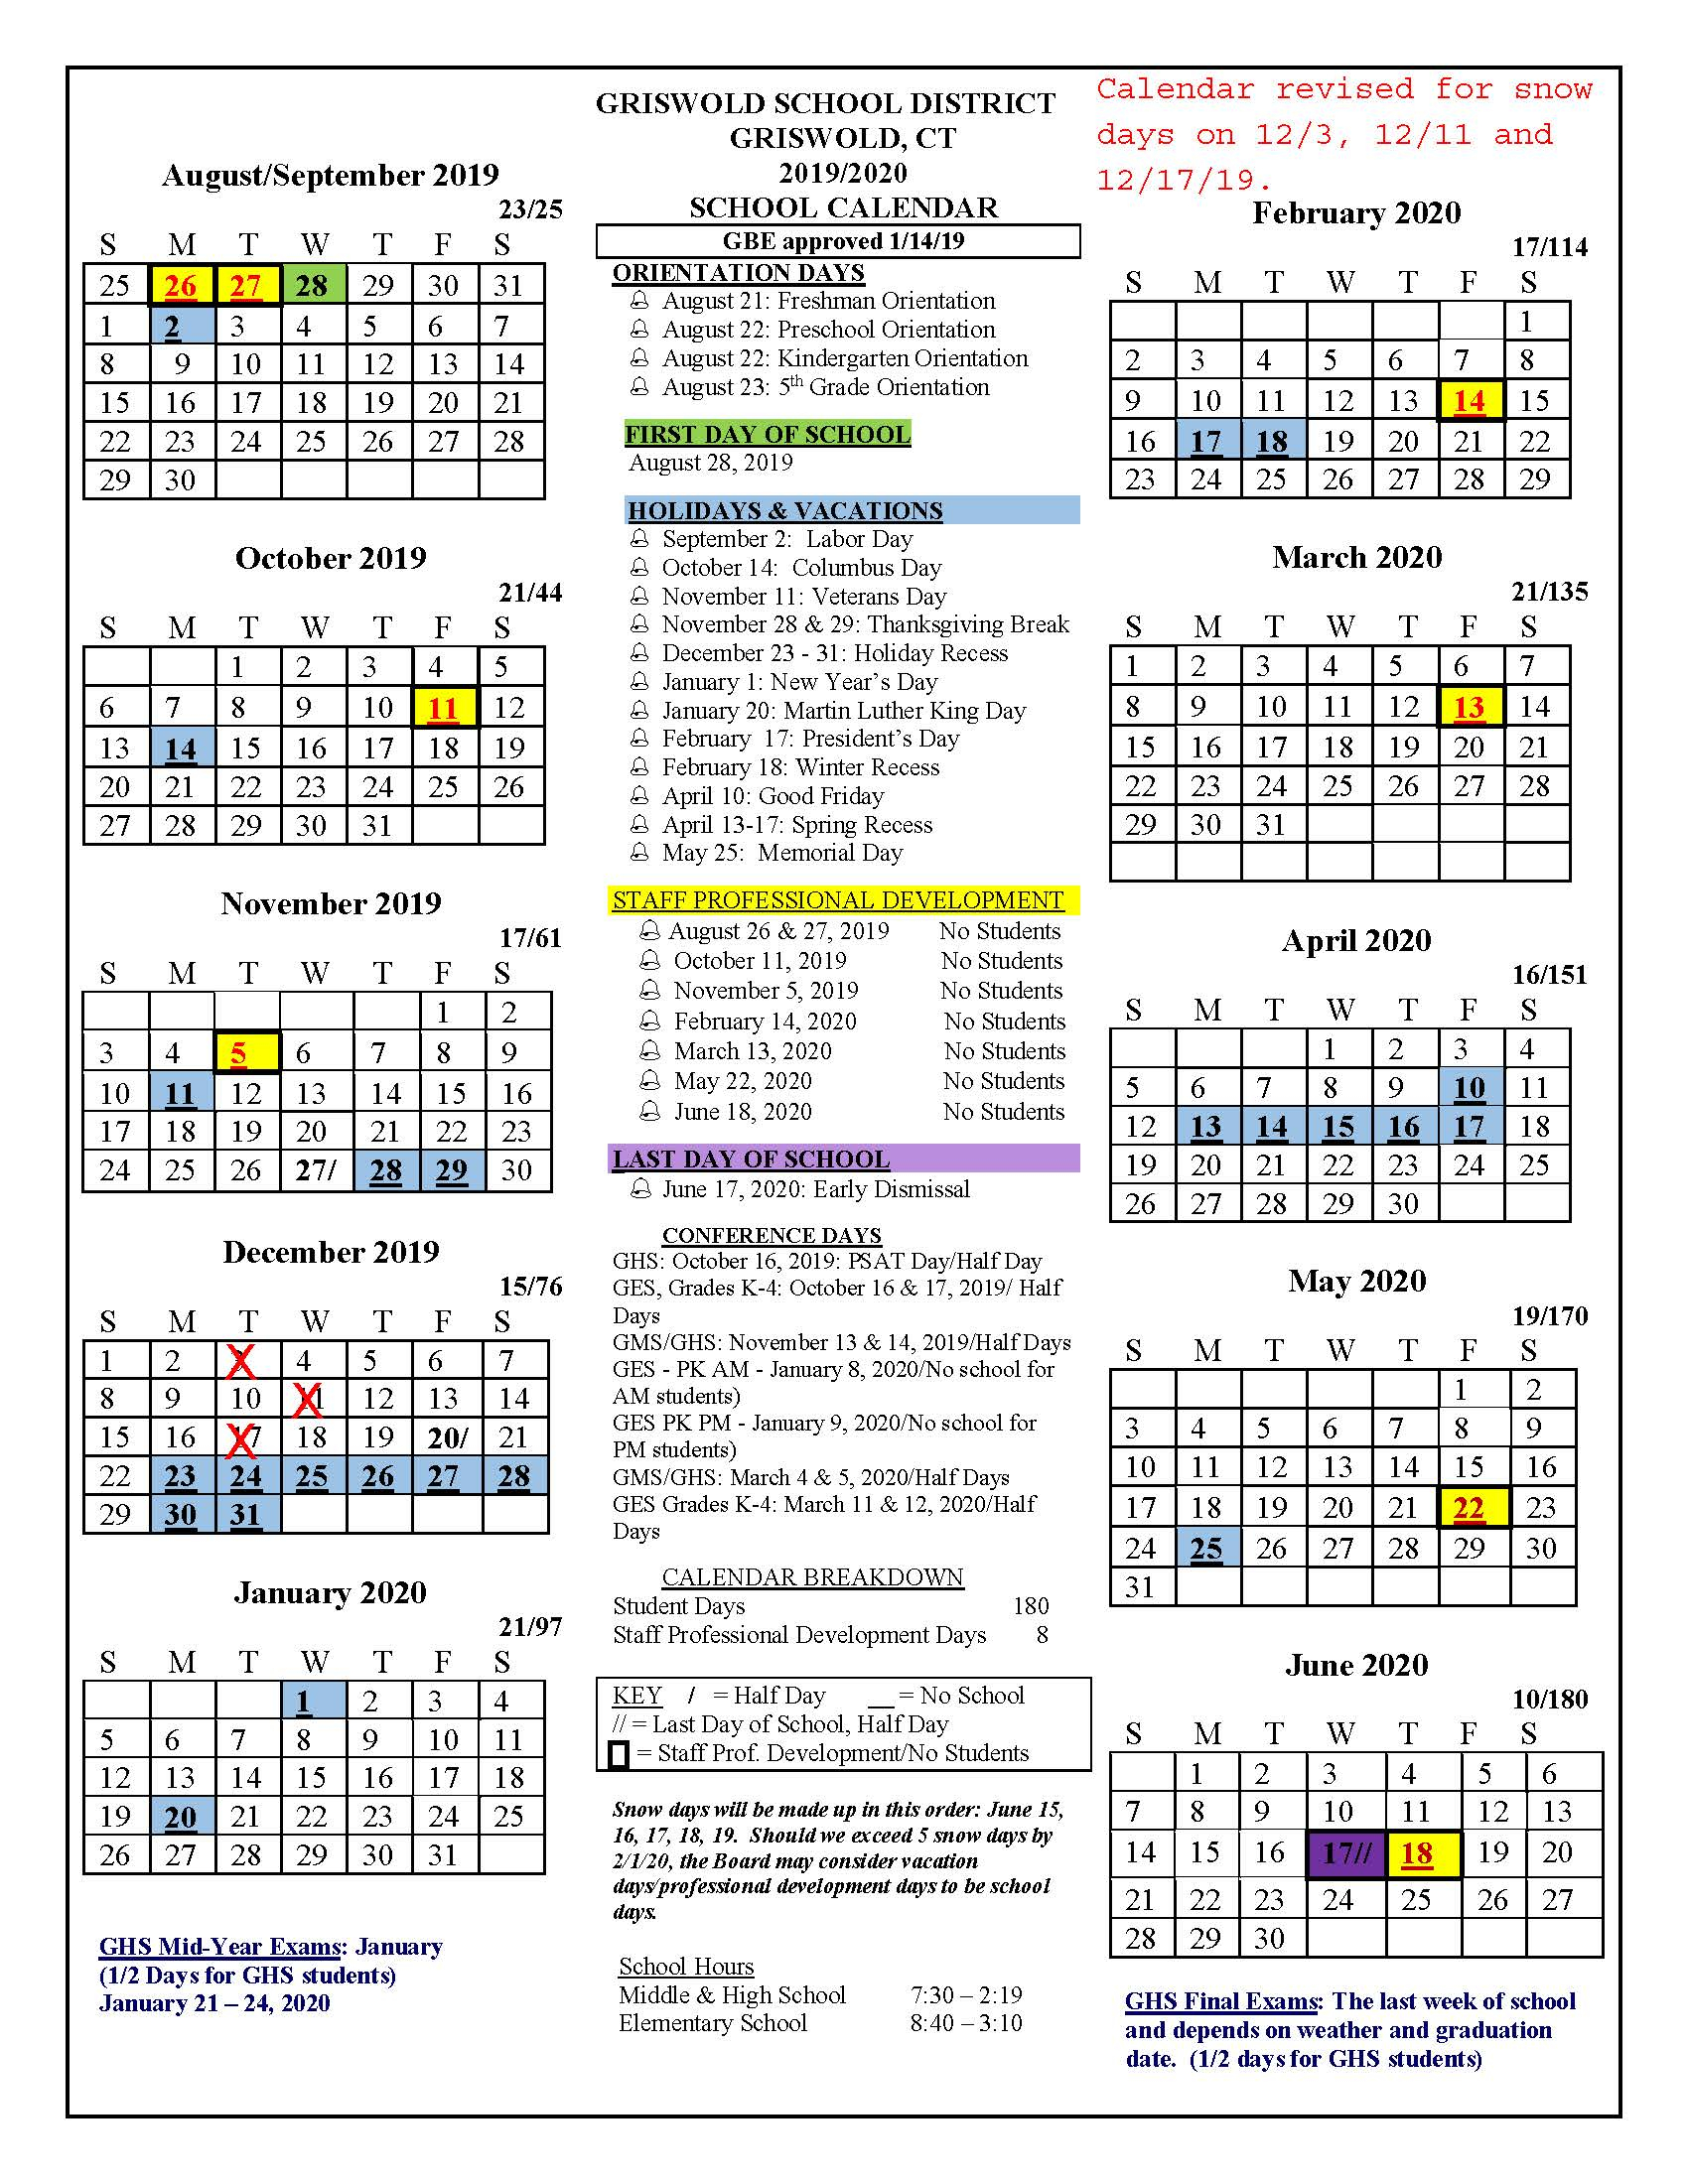 Board Approved Academic Calendar - Griswold Public Schools Inside Naugatuck Valley Community College Calendar